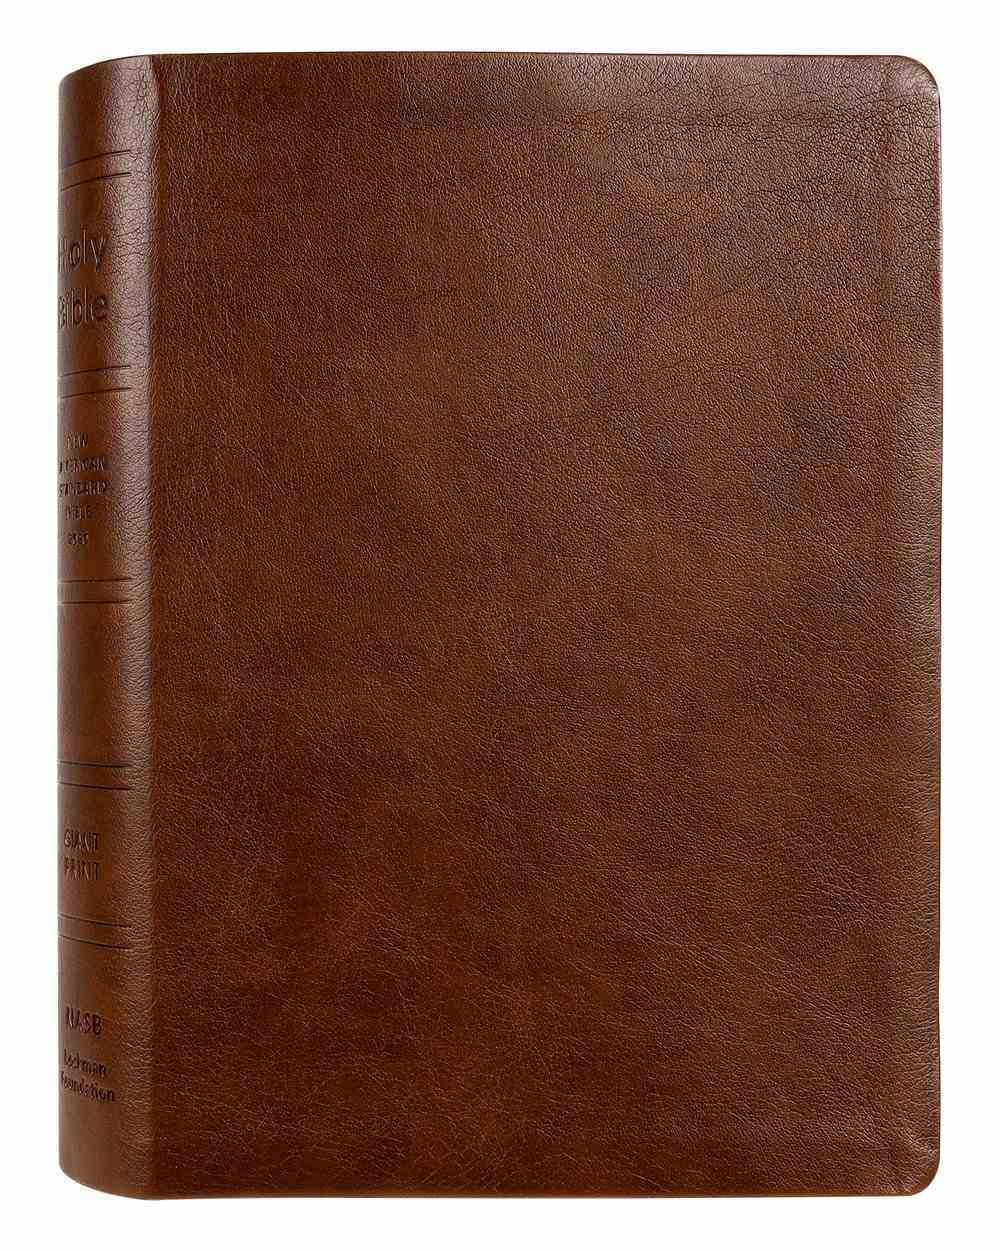 NASB 2020 Giant Print Bible Brown Indexed Imitation Leather